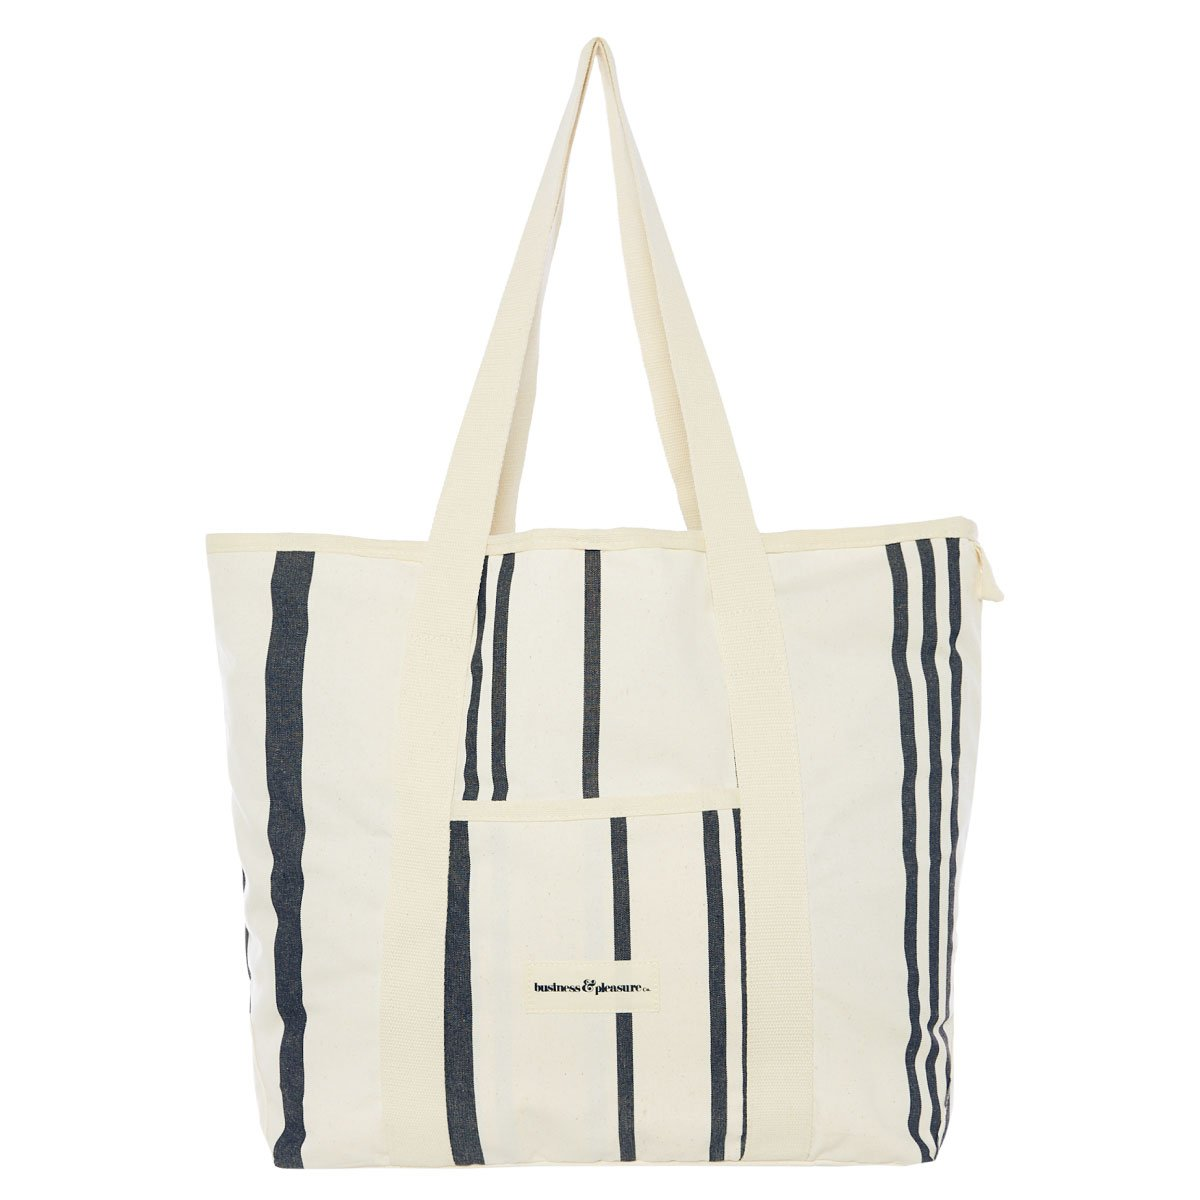 The Beach Bag - Vintage Black Stripe - Business & Pleasure Co